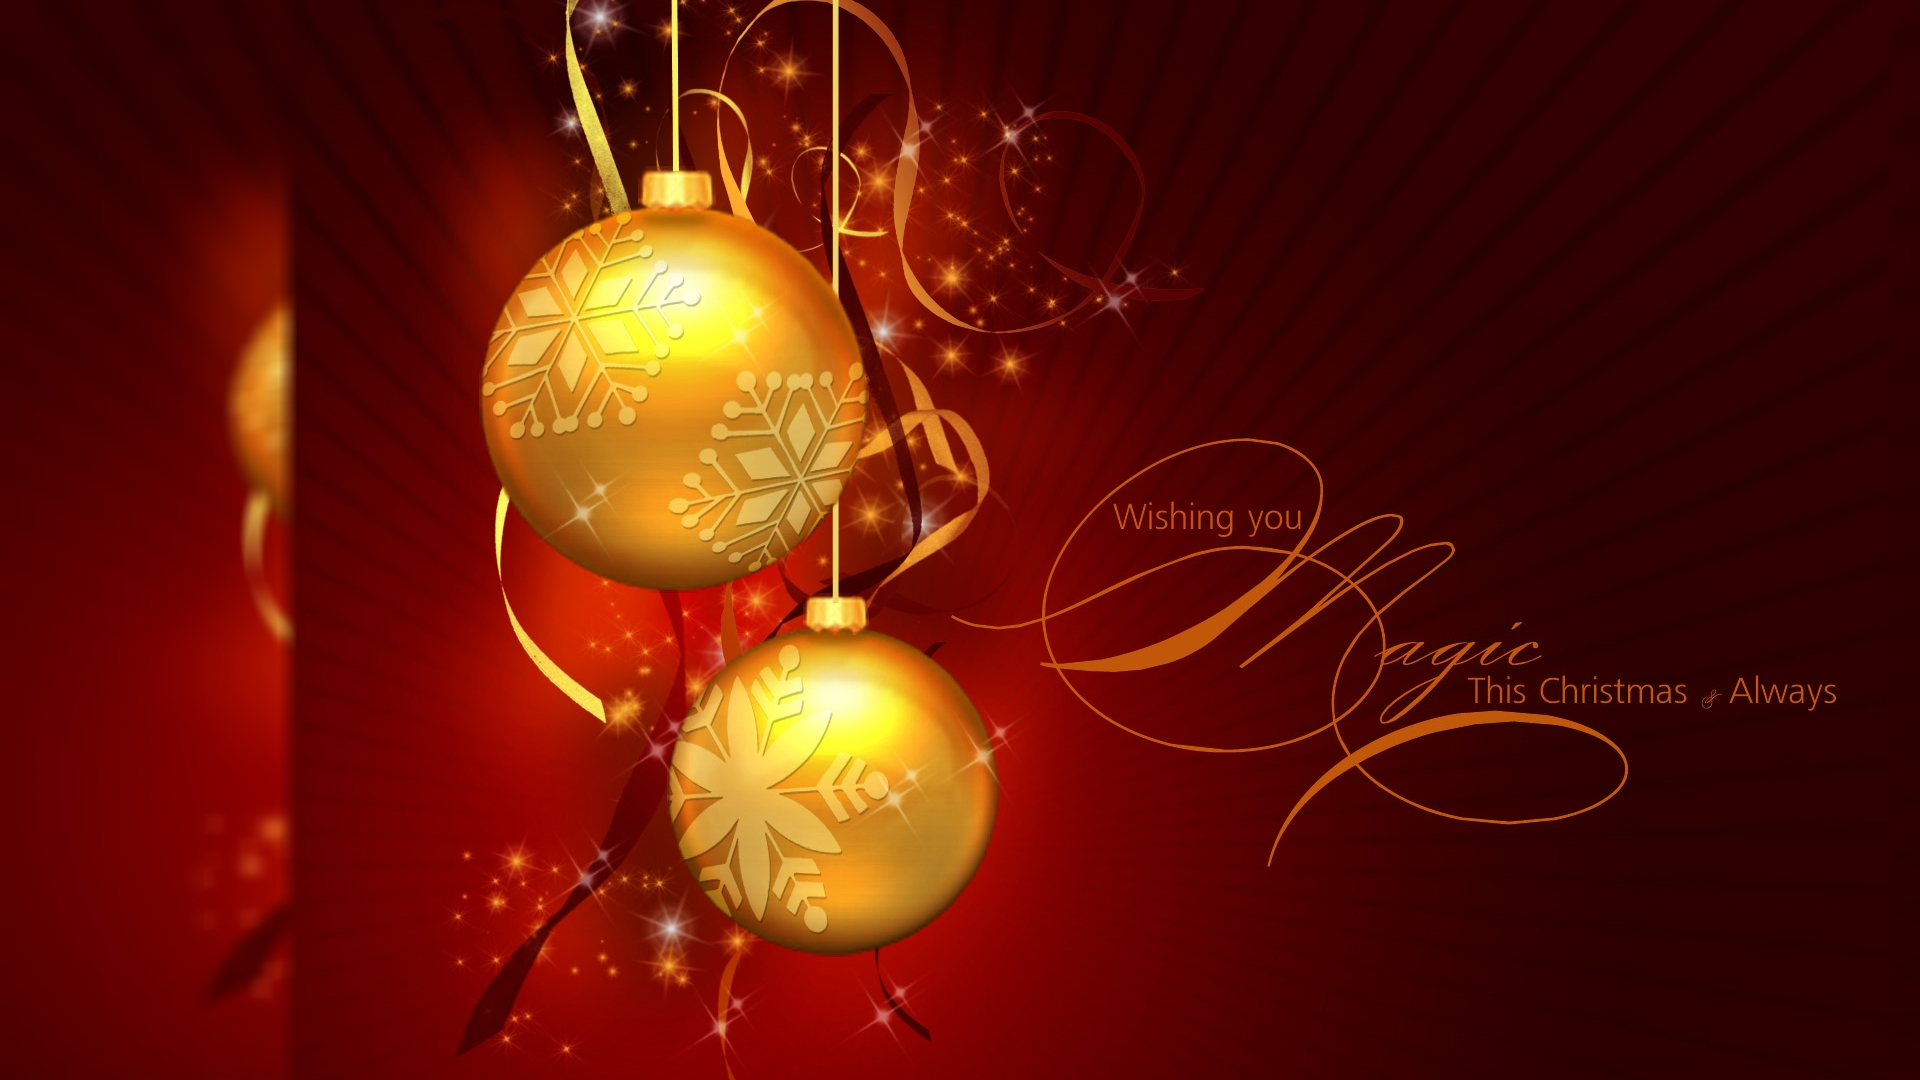 78] Desktop Christmas Backgrounds on WallpaperSafari 1920x1080